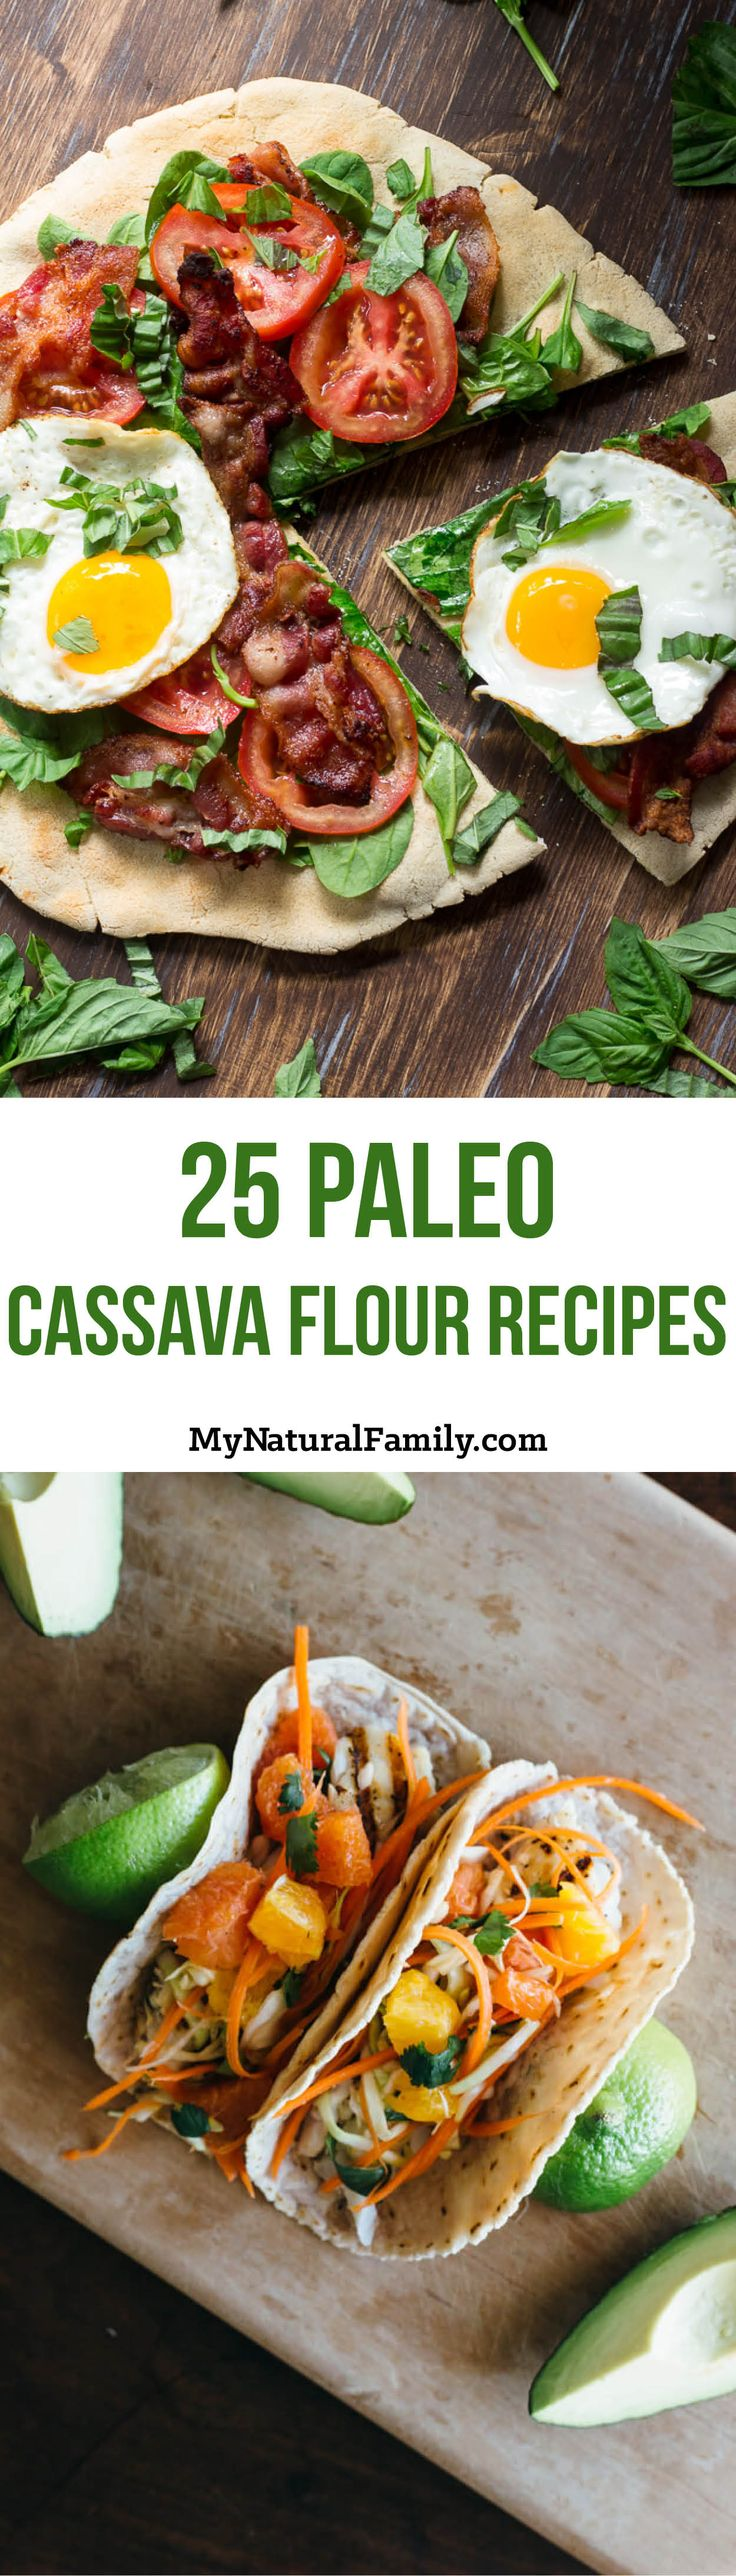 "I'm really like the look of these Paleo cassava flour recipes. They almost look ""normal."" Can't wait to try these!"